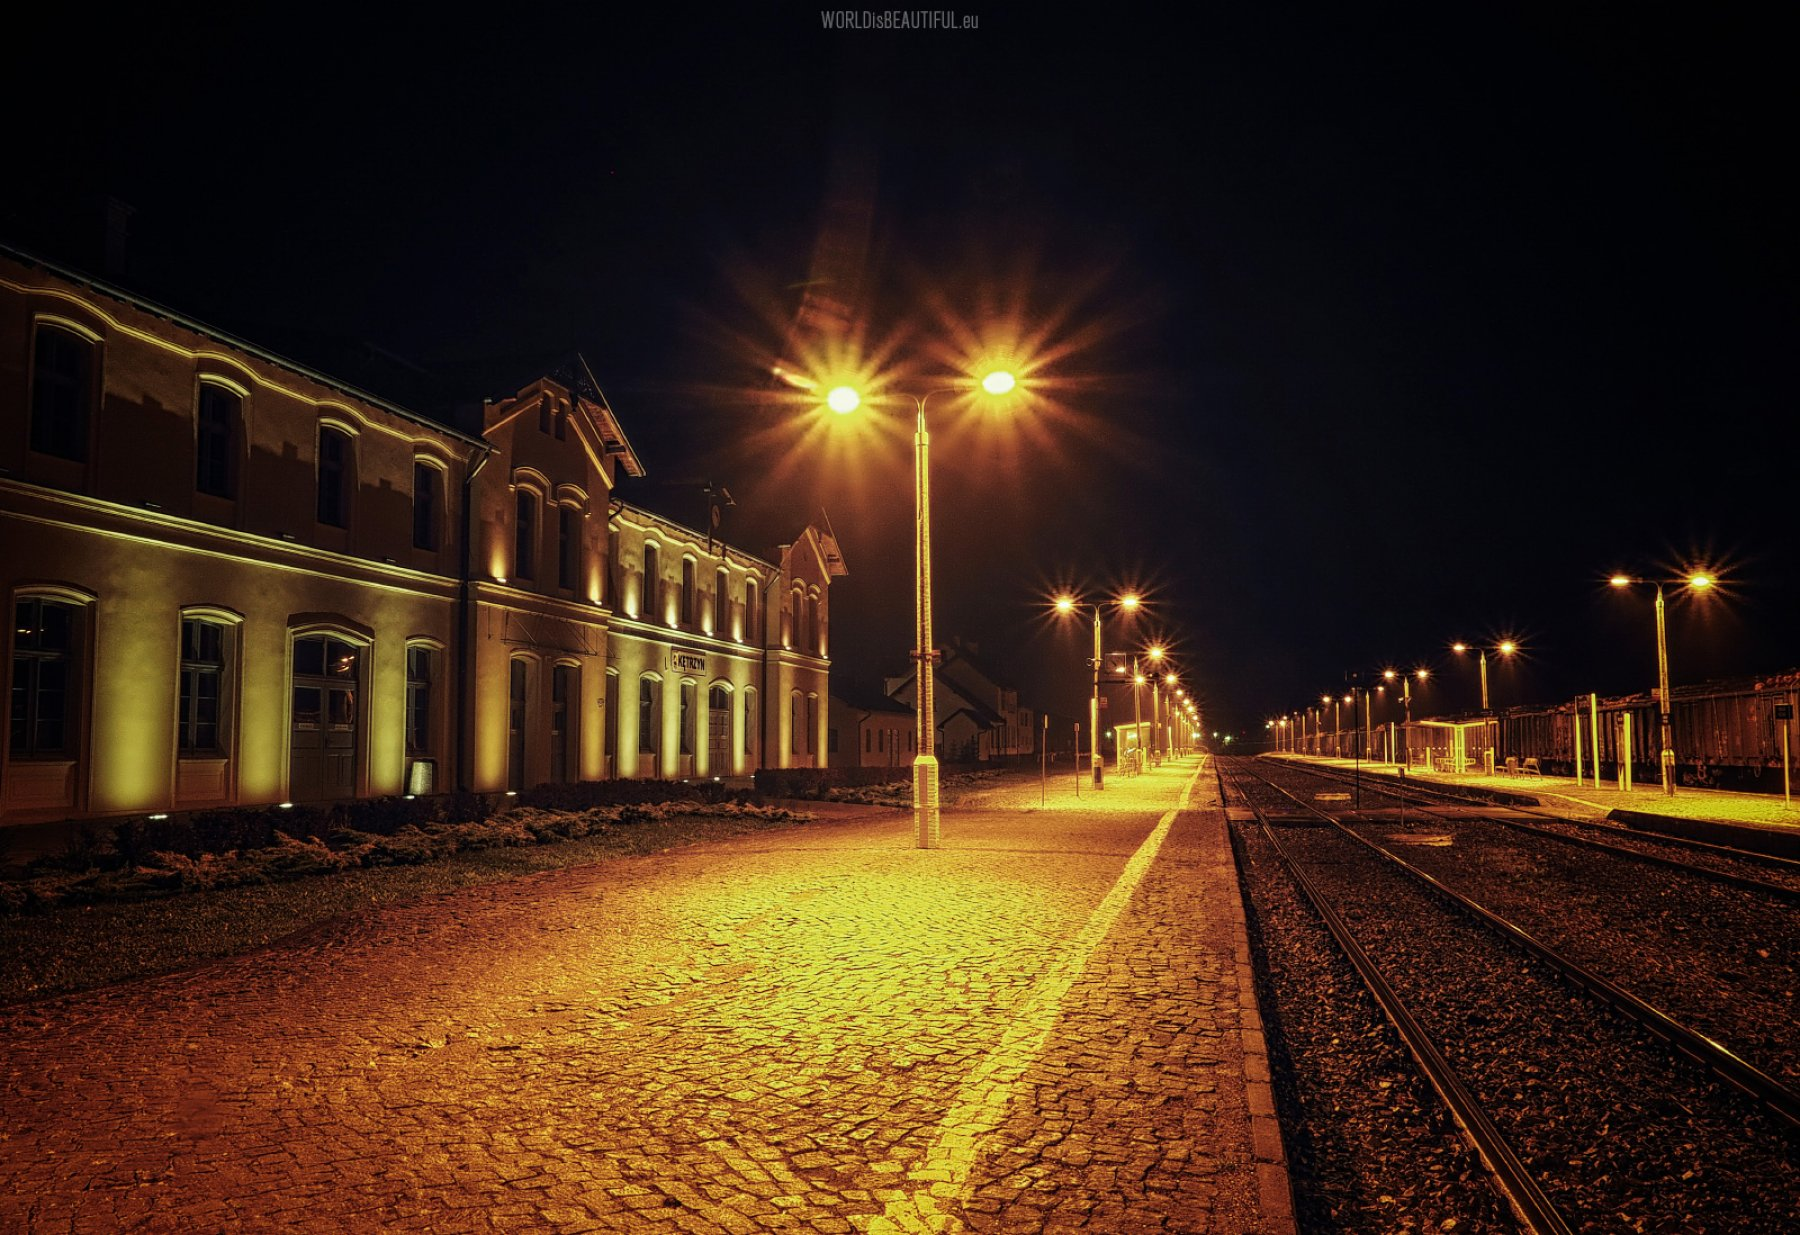 Kętrzyn station by Night